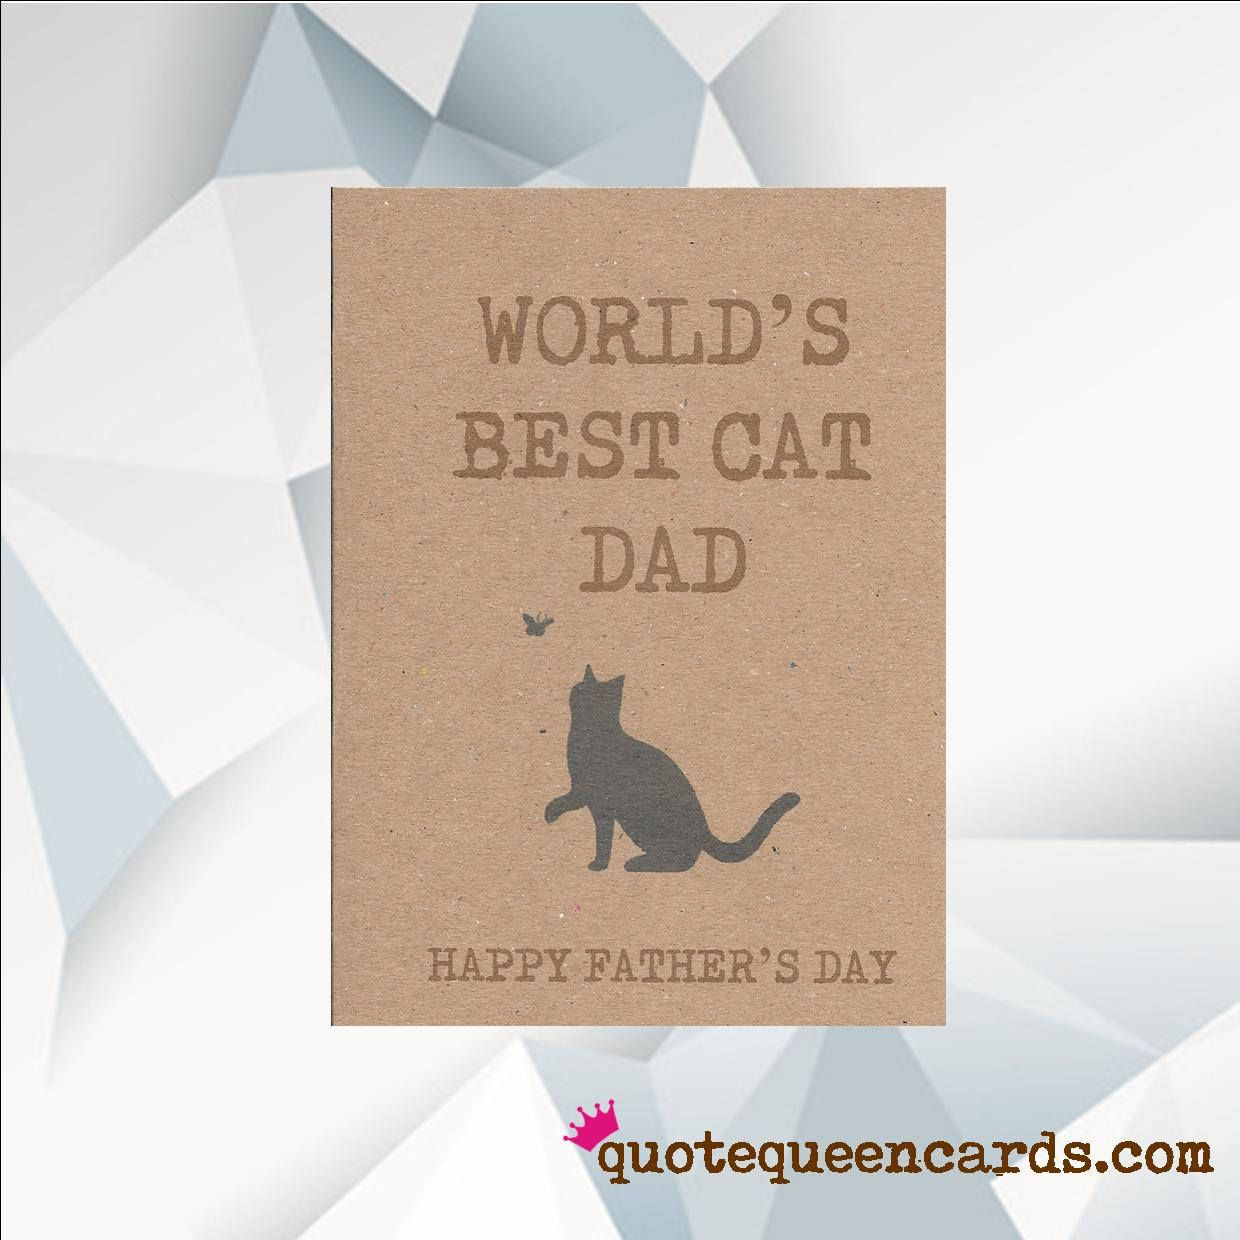 Worlds Best Cat Dad Happy Fathers Day Card Fathers Day Card From